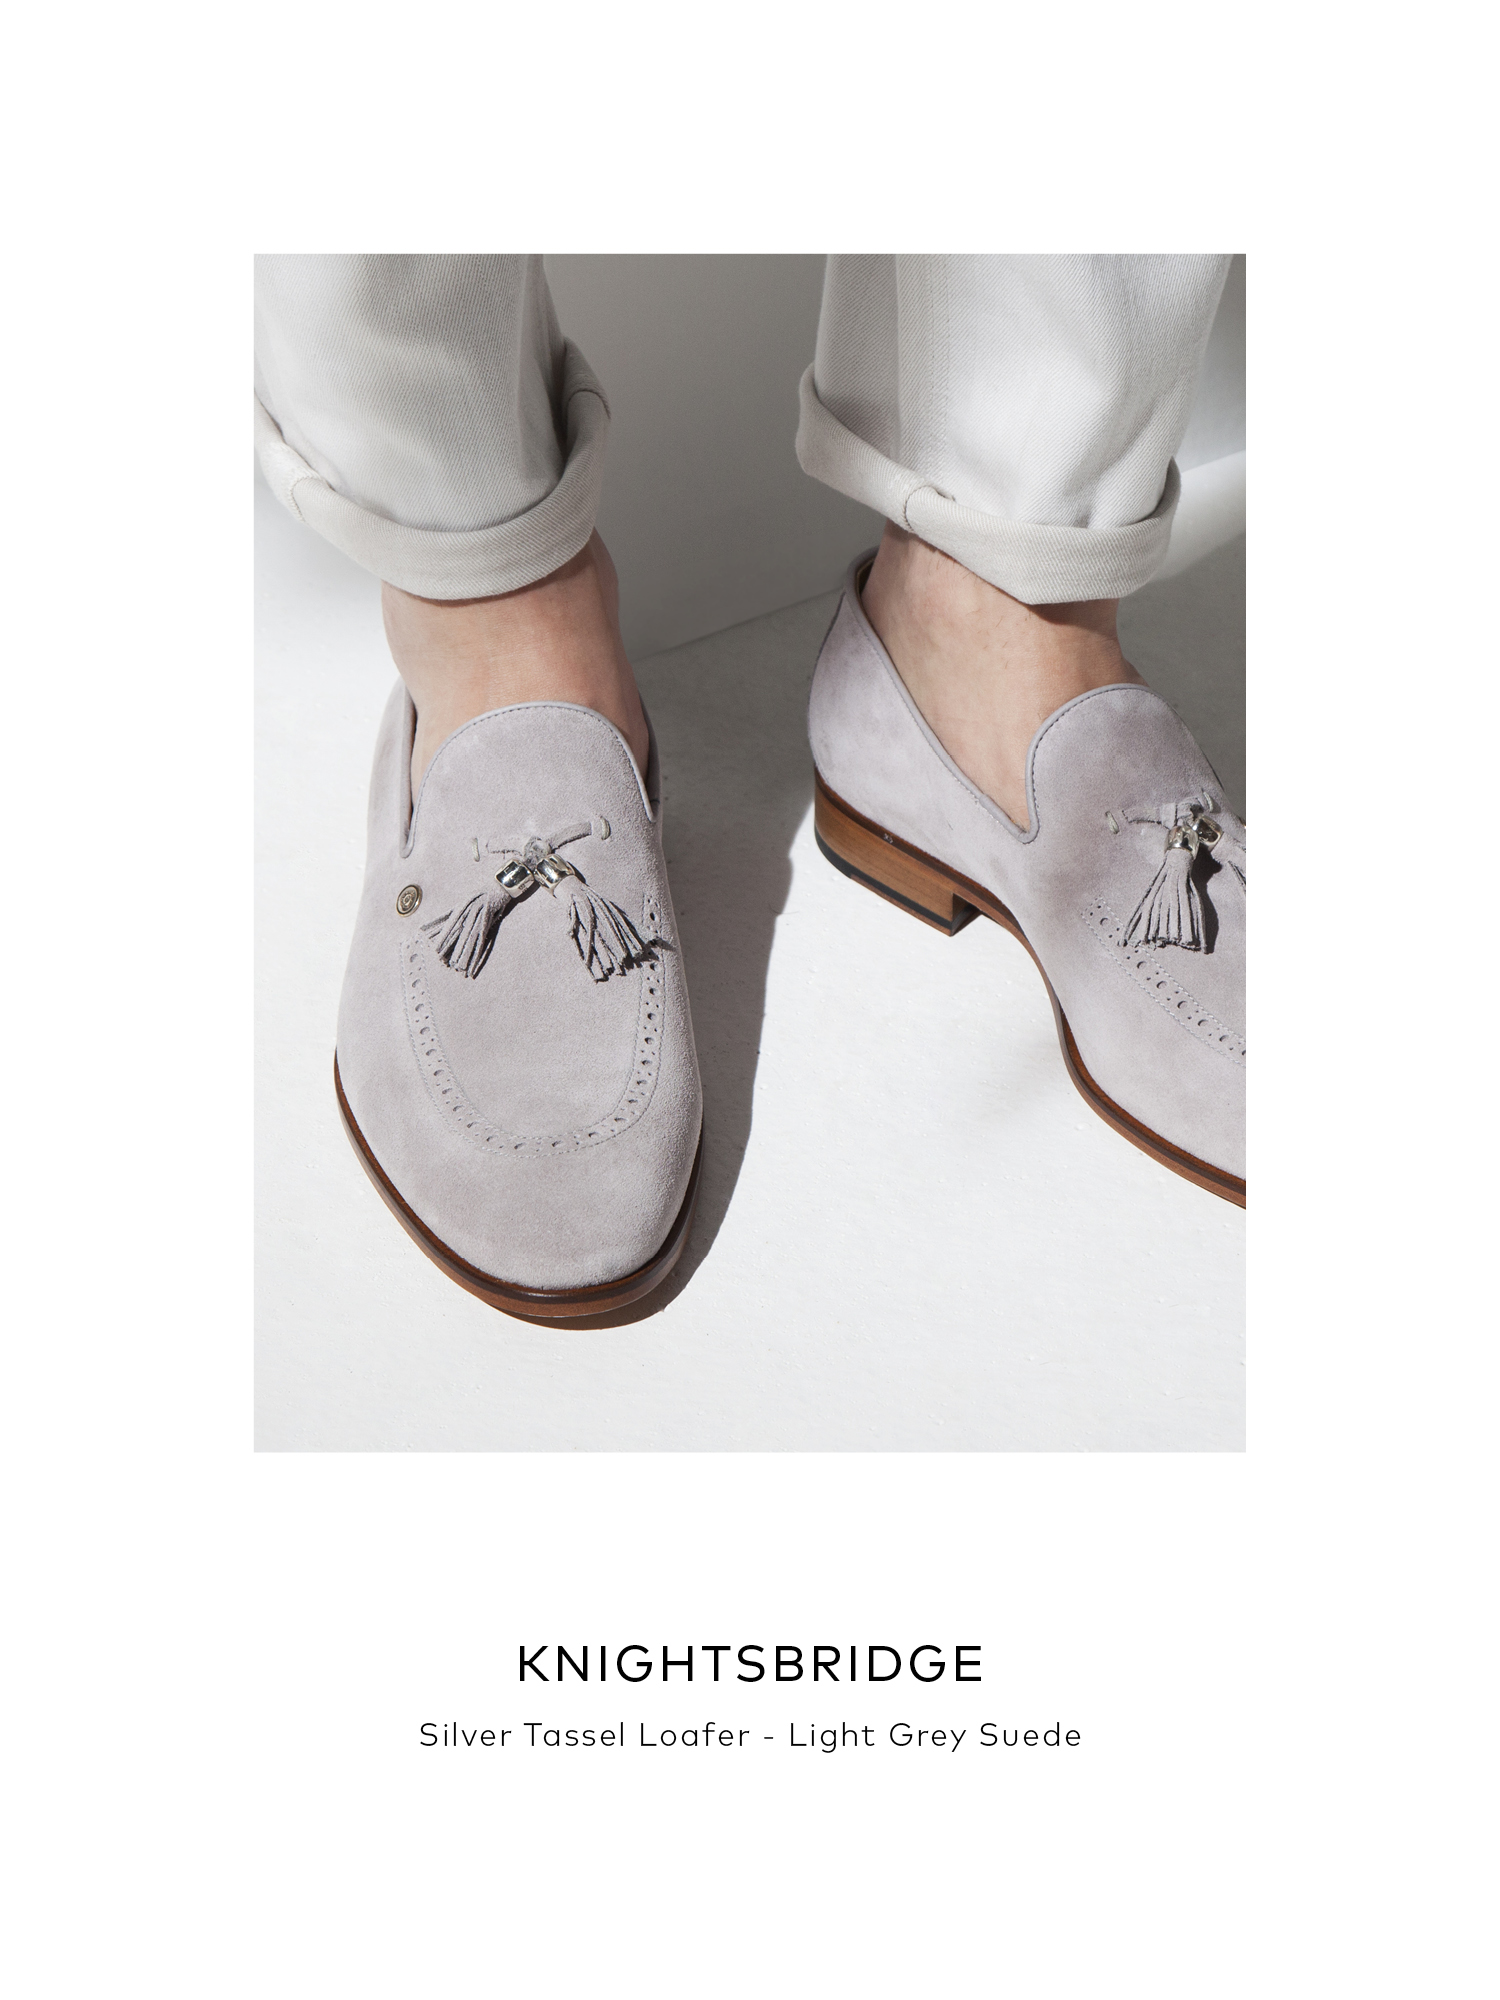 Knightsbridge, Silver Tassel Loafer - Light Grey Suede